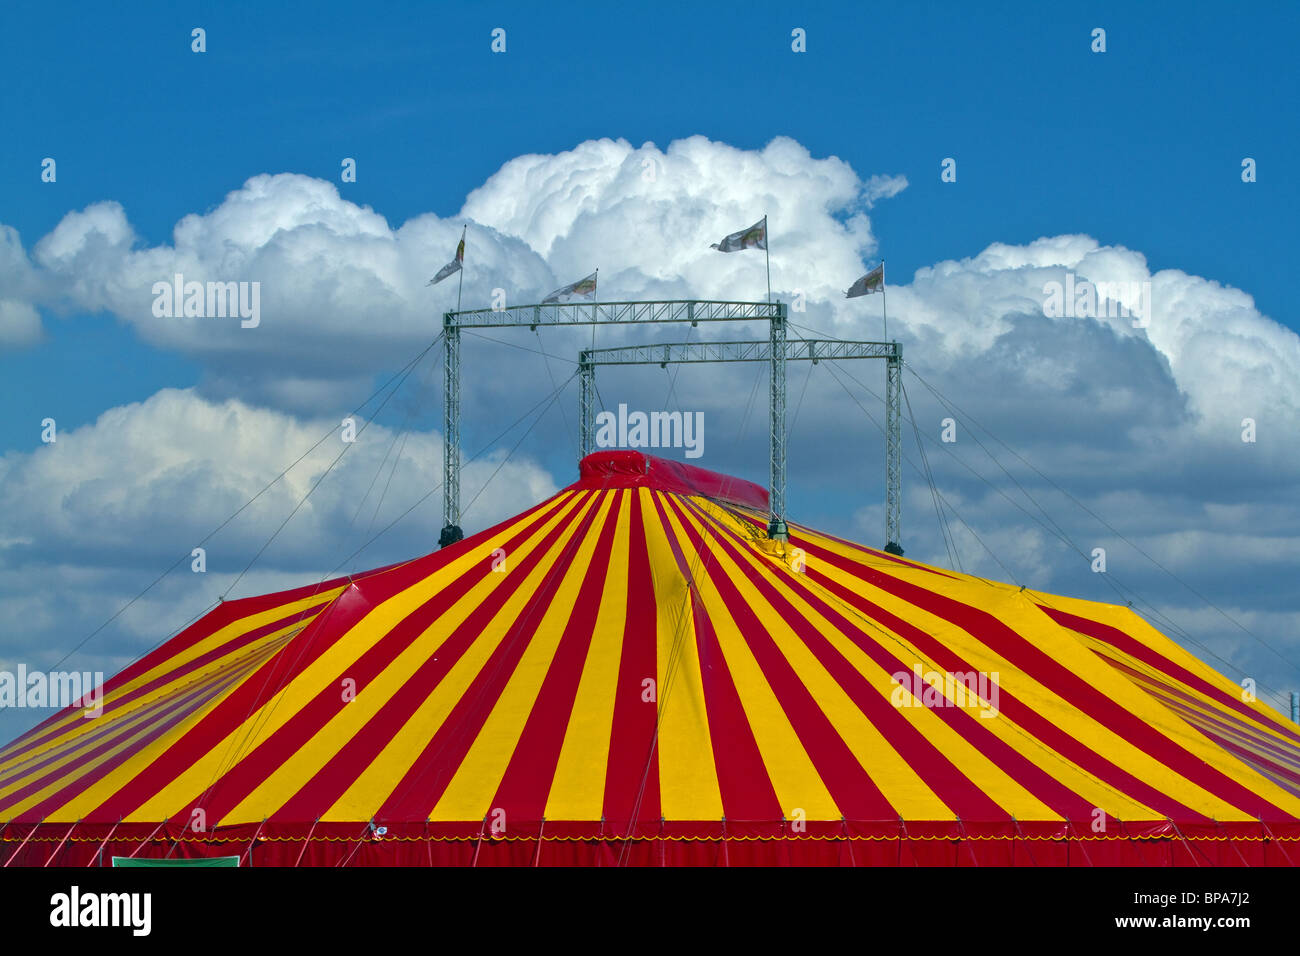 Striped circus tent against a blue sky with fluffy clouds. Horizontal - Stock Image